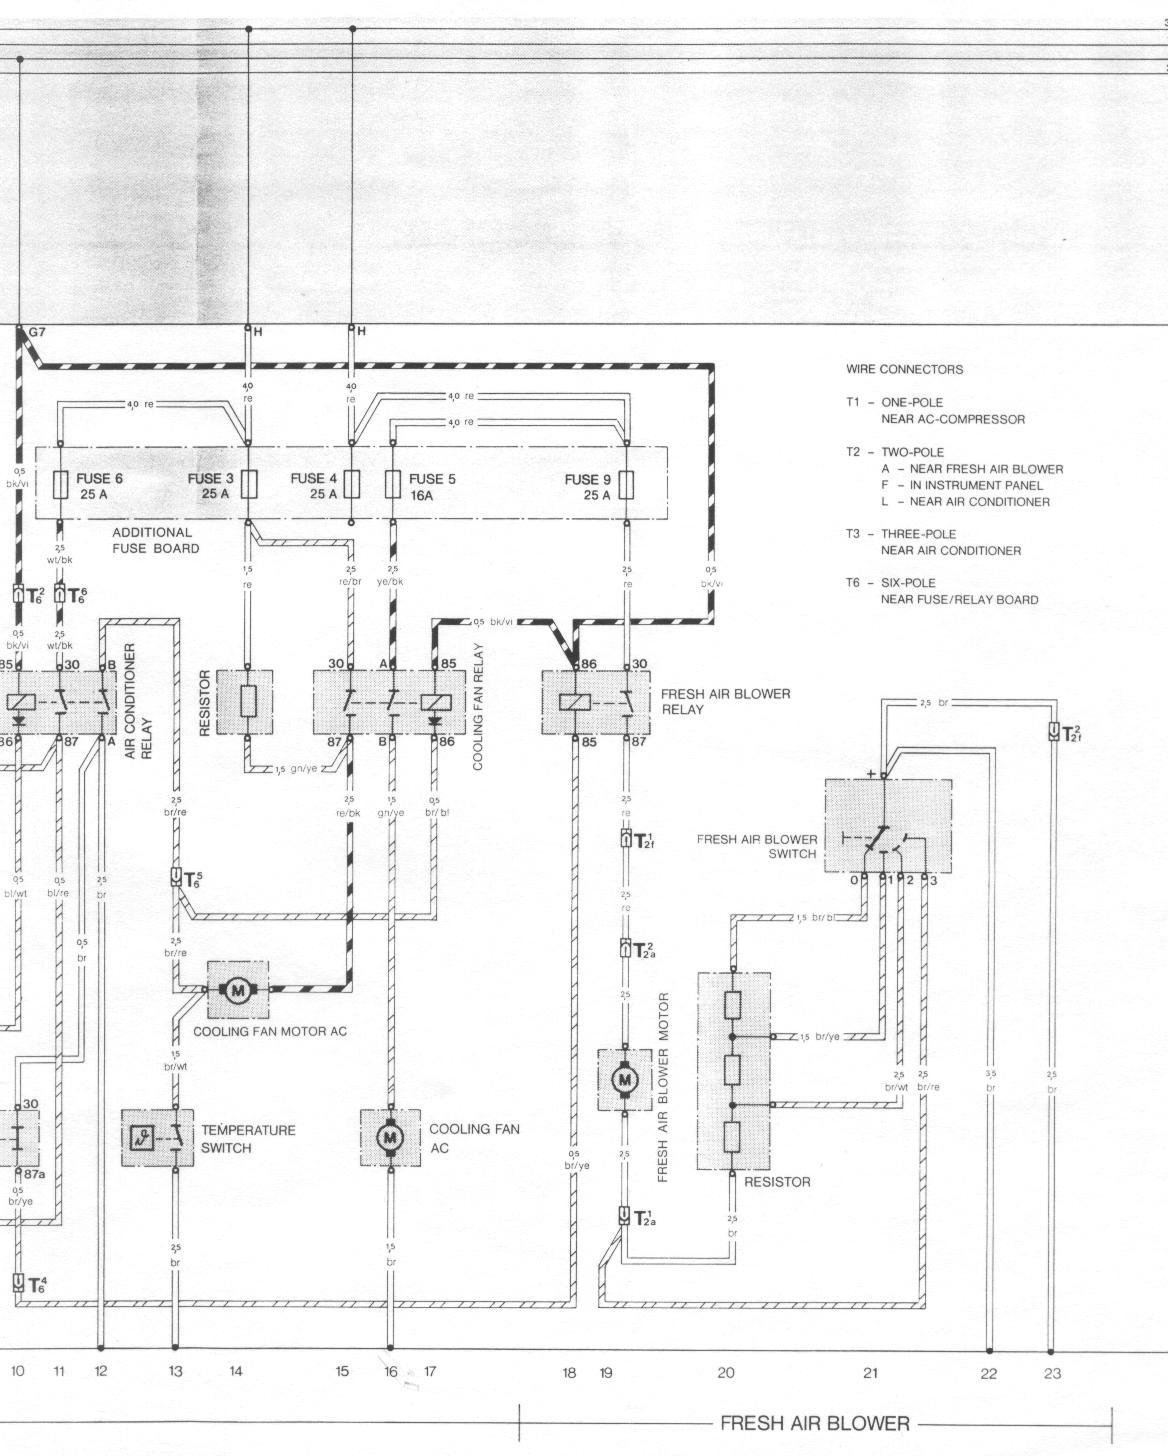 Wiring Diagram For Porsche 944 - Wiring Diagram M2 on